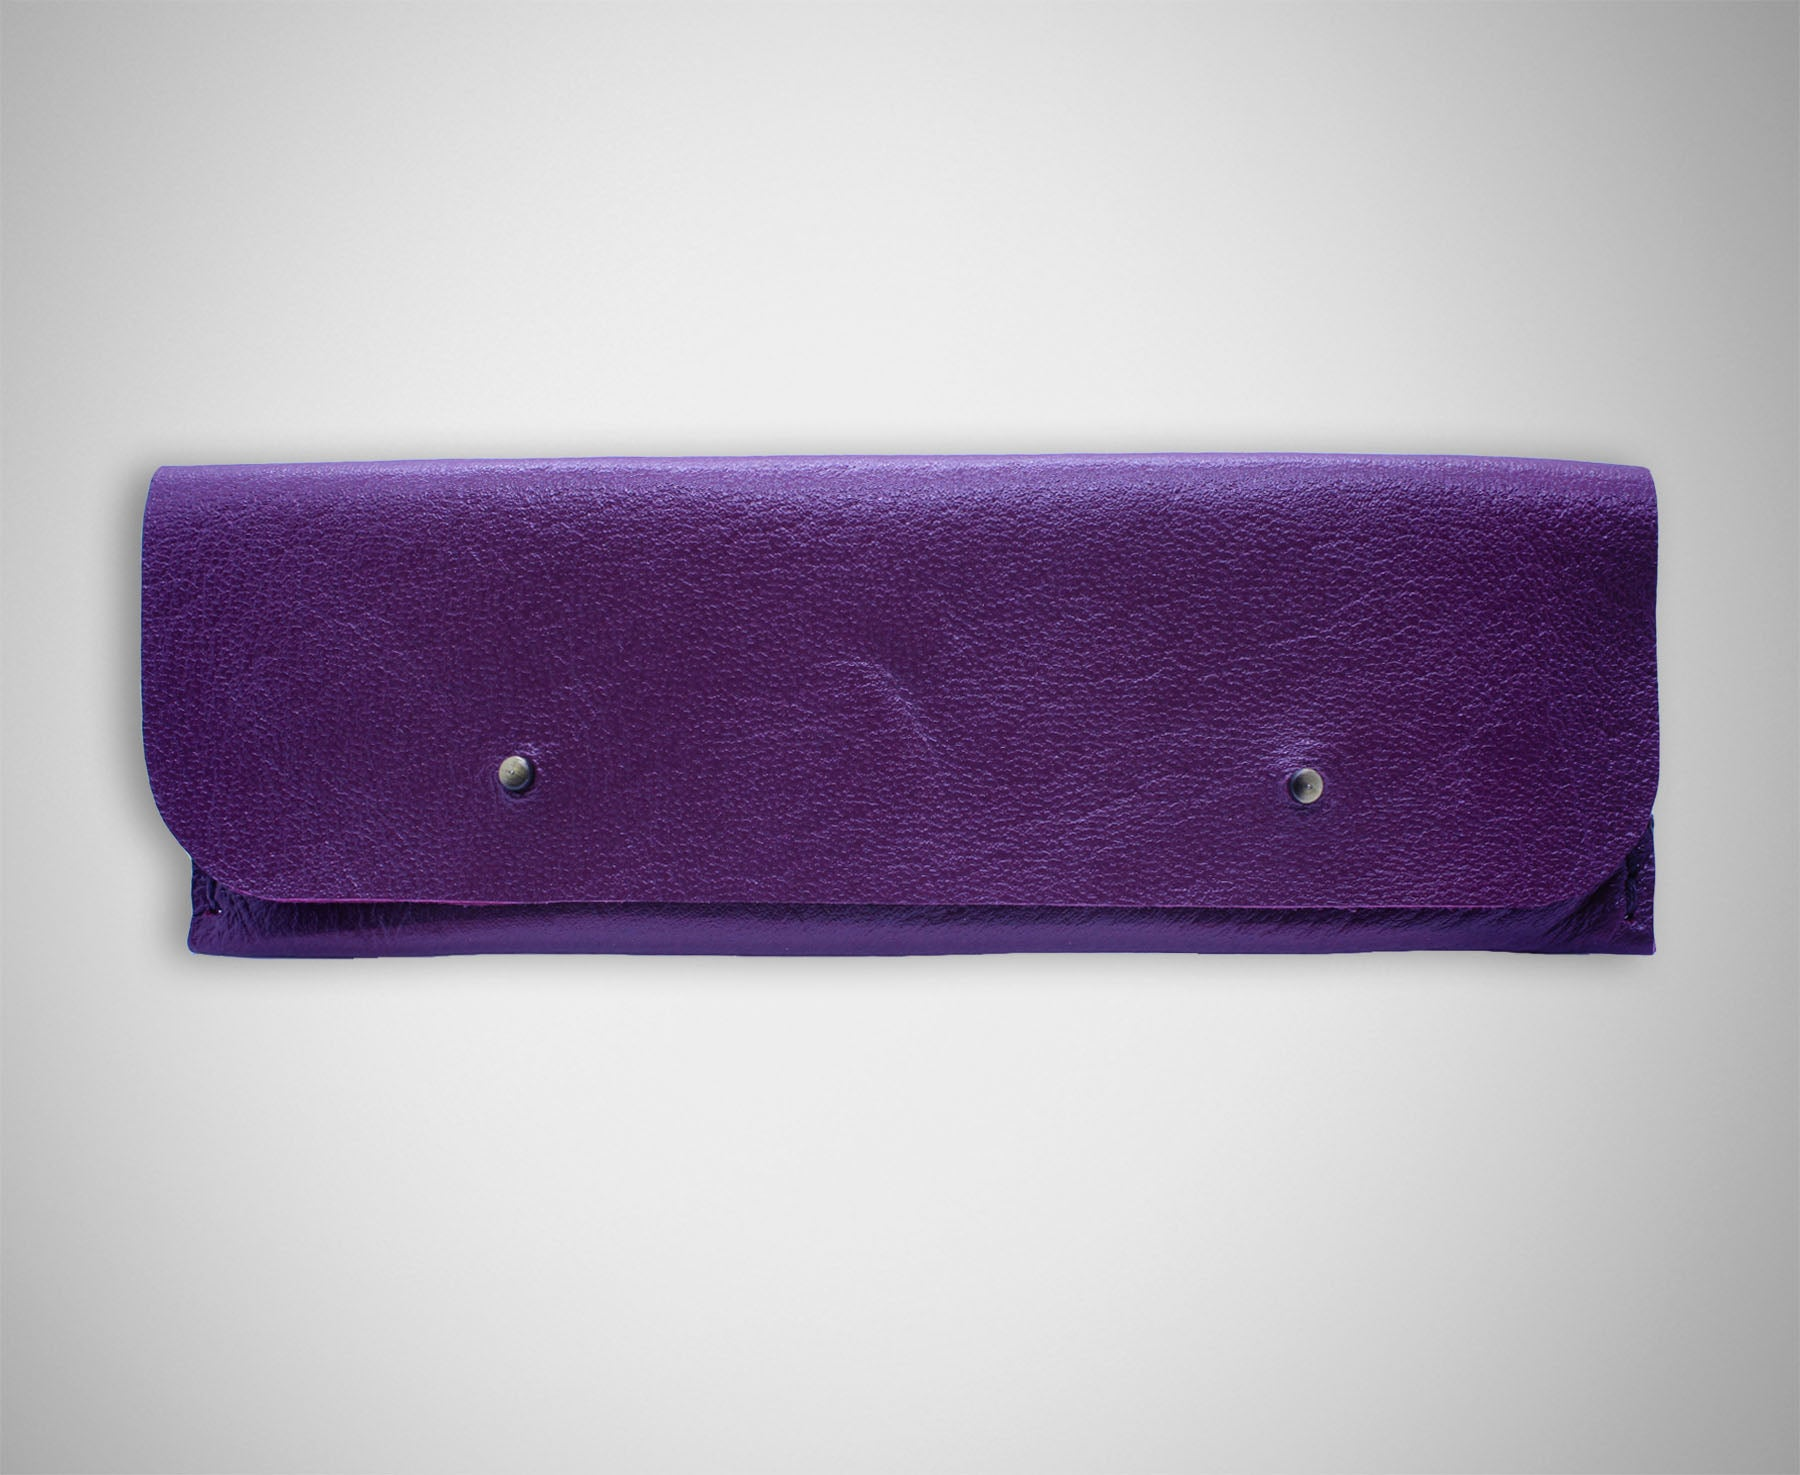 ARKWARD PURPLE LEATHER PEN POUCH